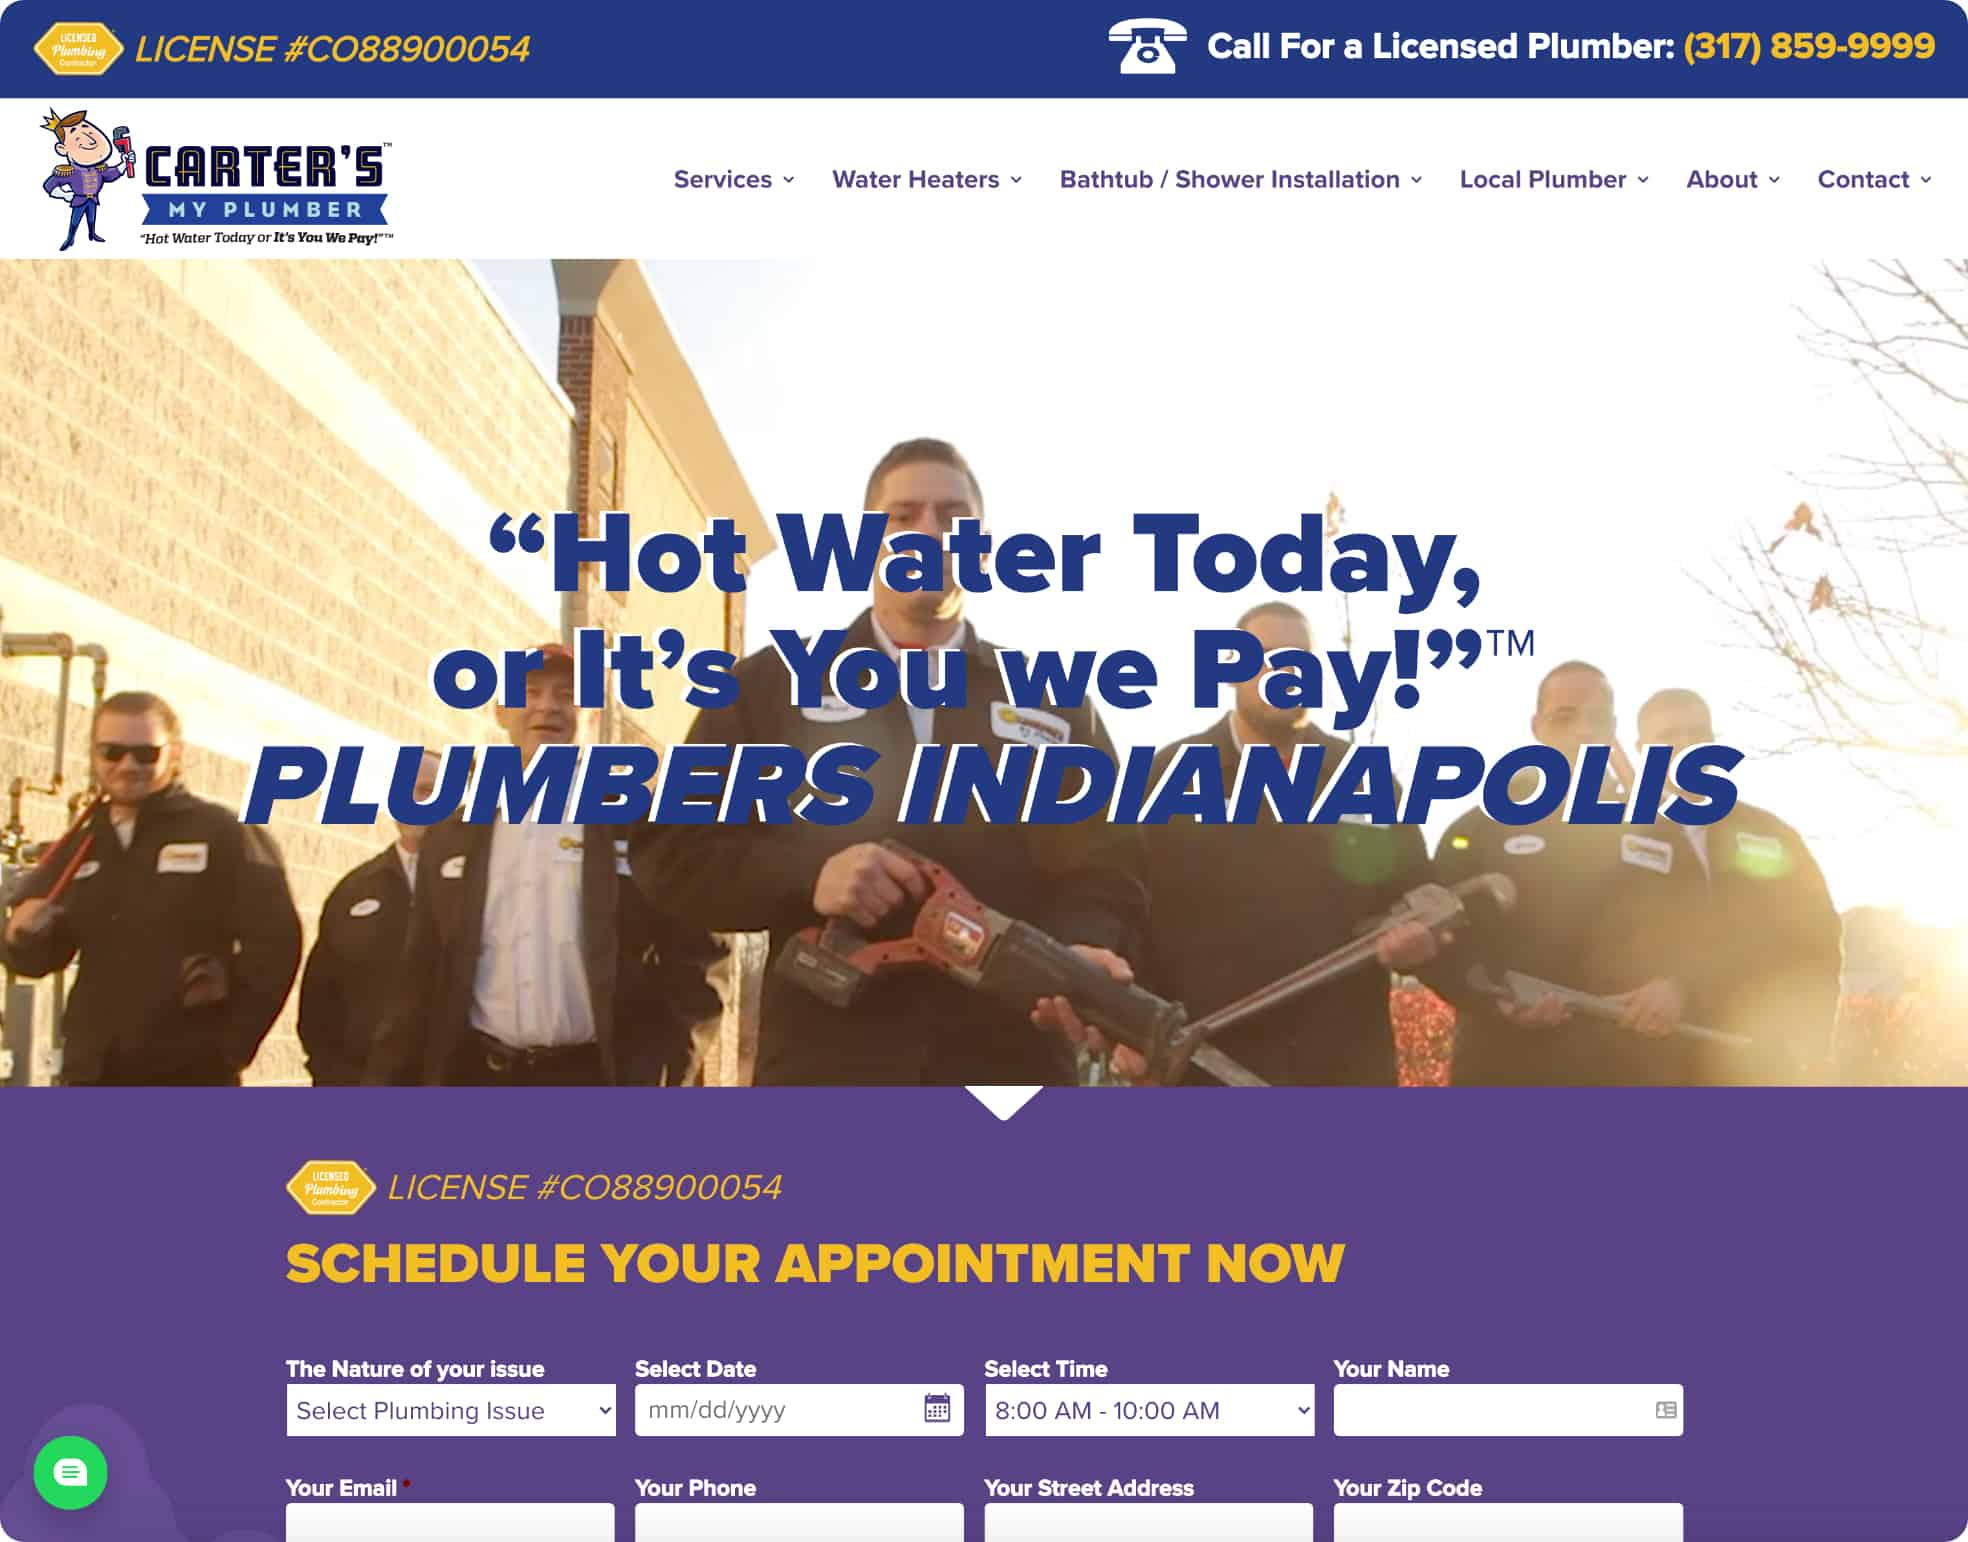 Carter's My Plumber Website Screenshot